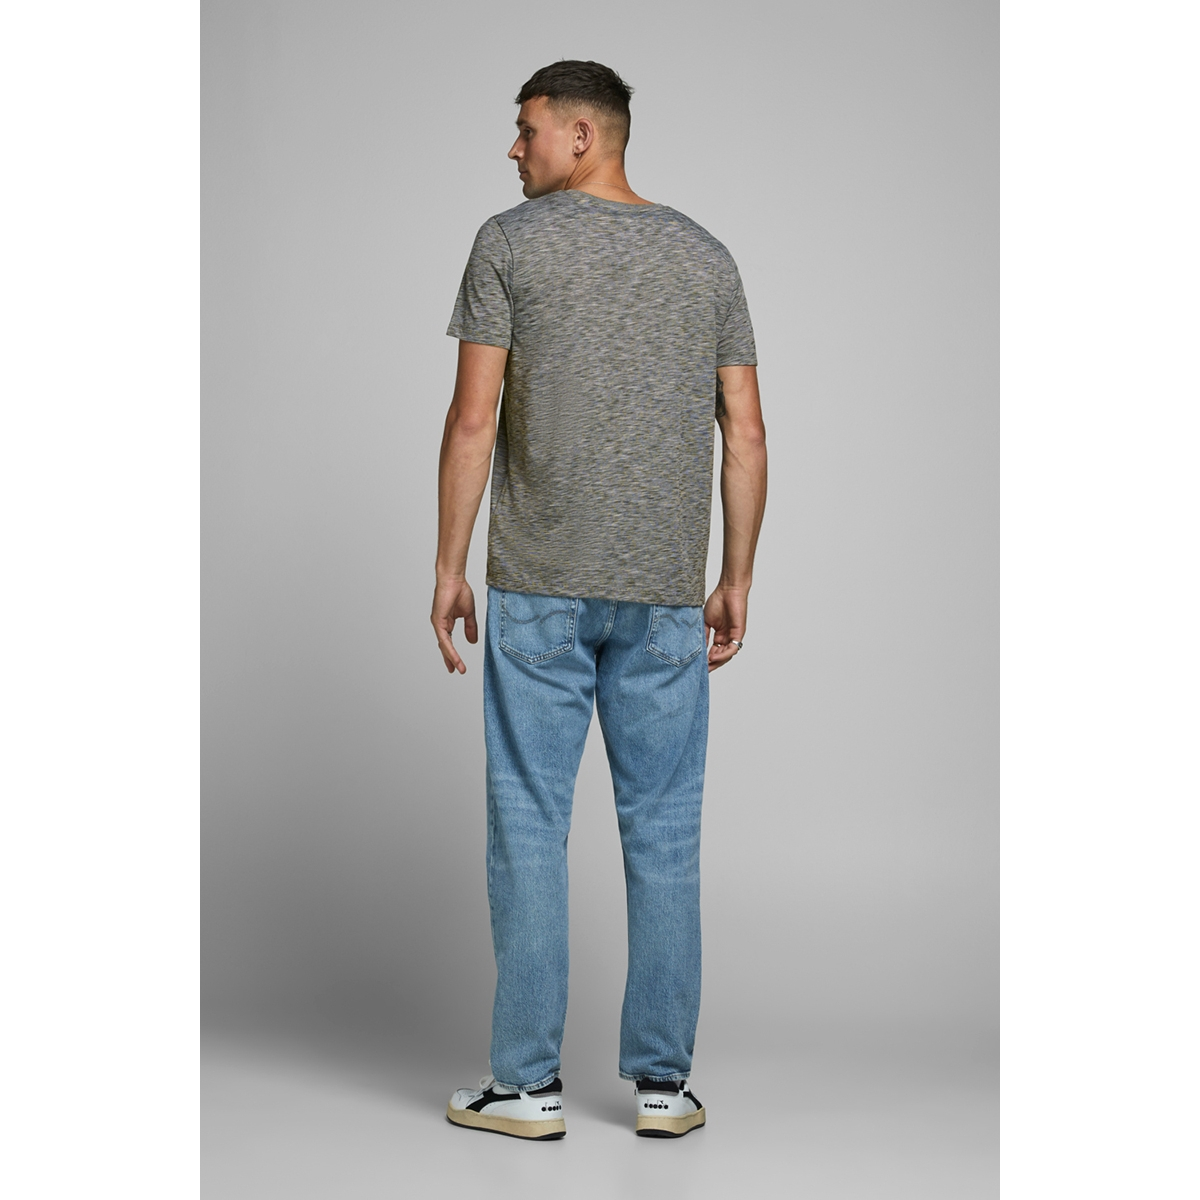 jjjones tee ss crew neck 12175124 jack & jones t-shirt forest night/slim